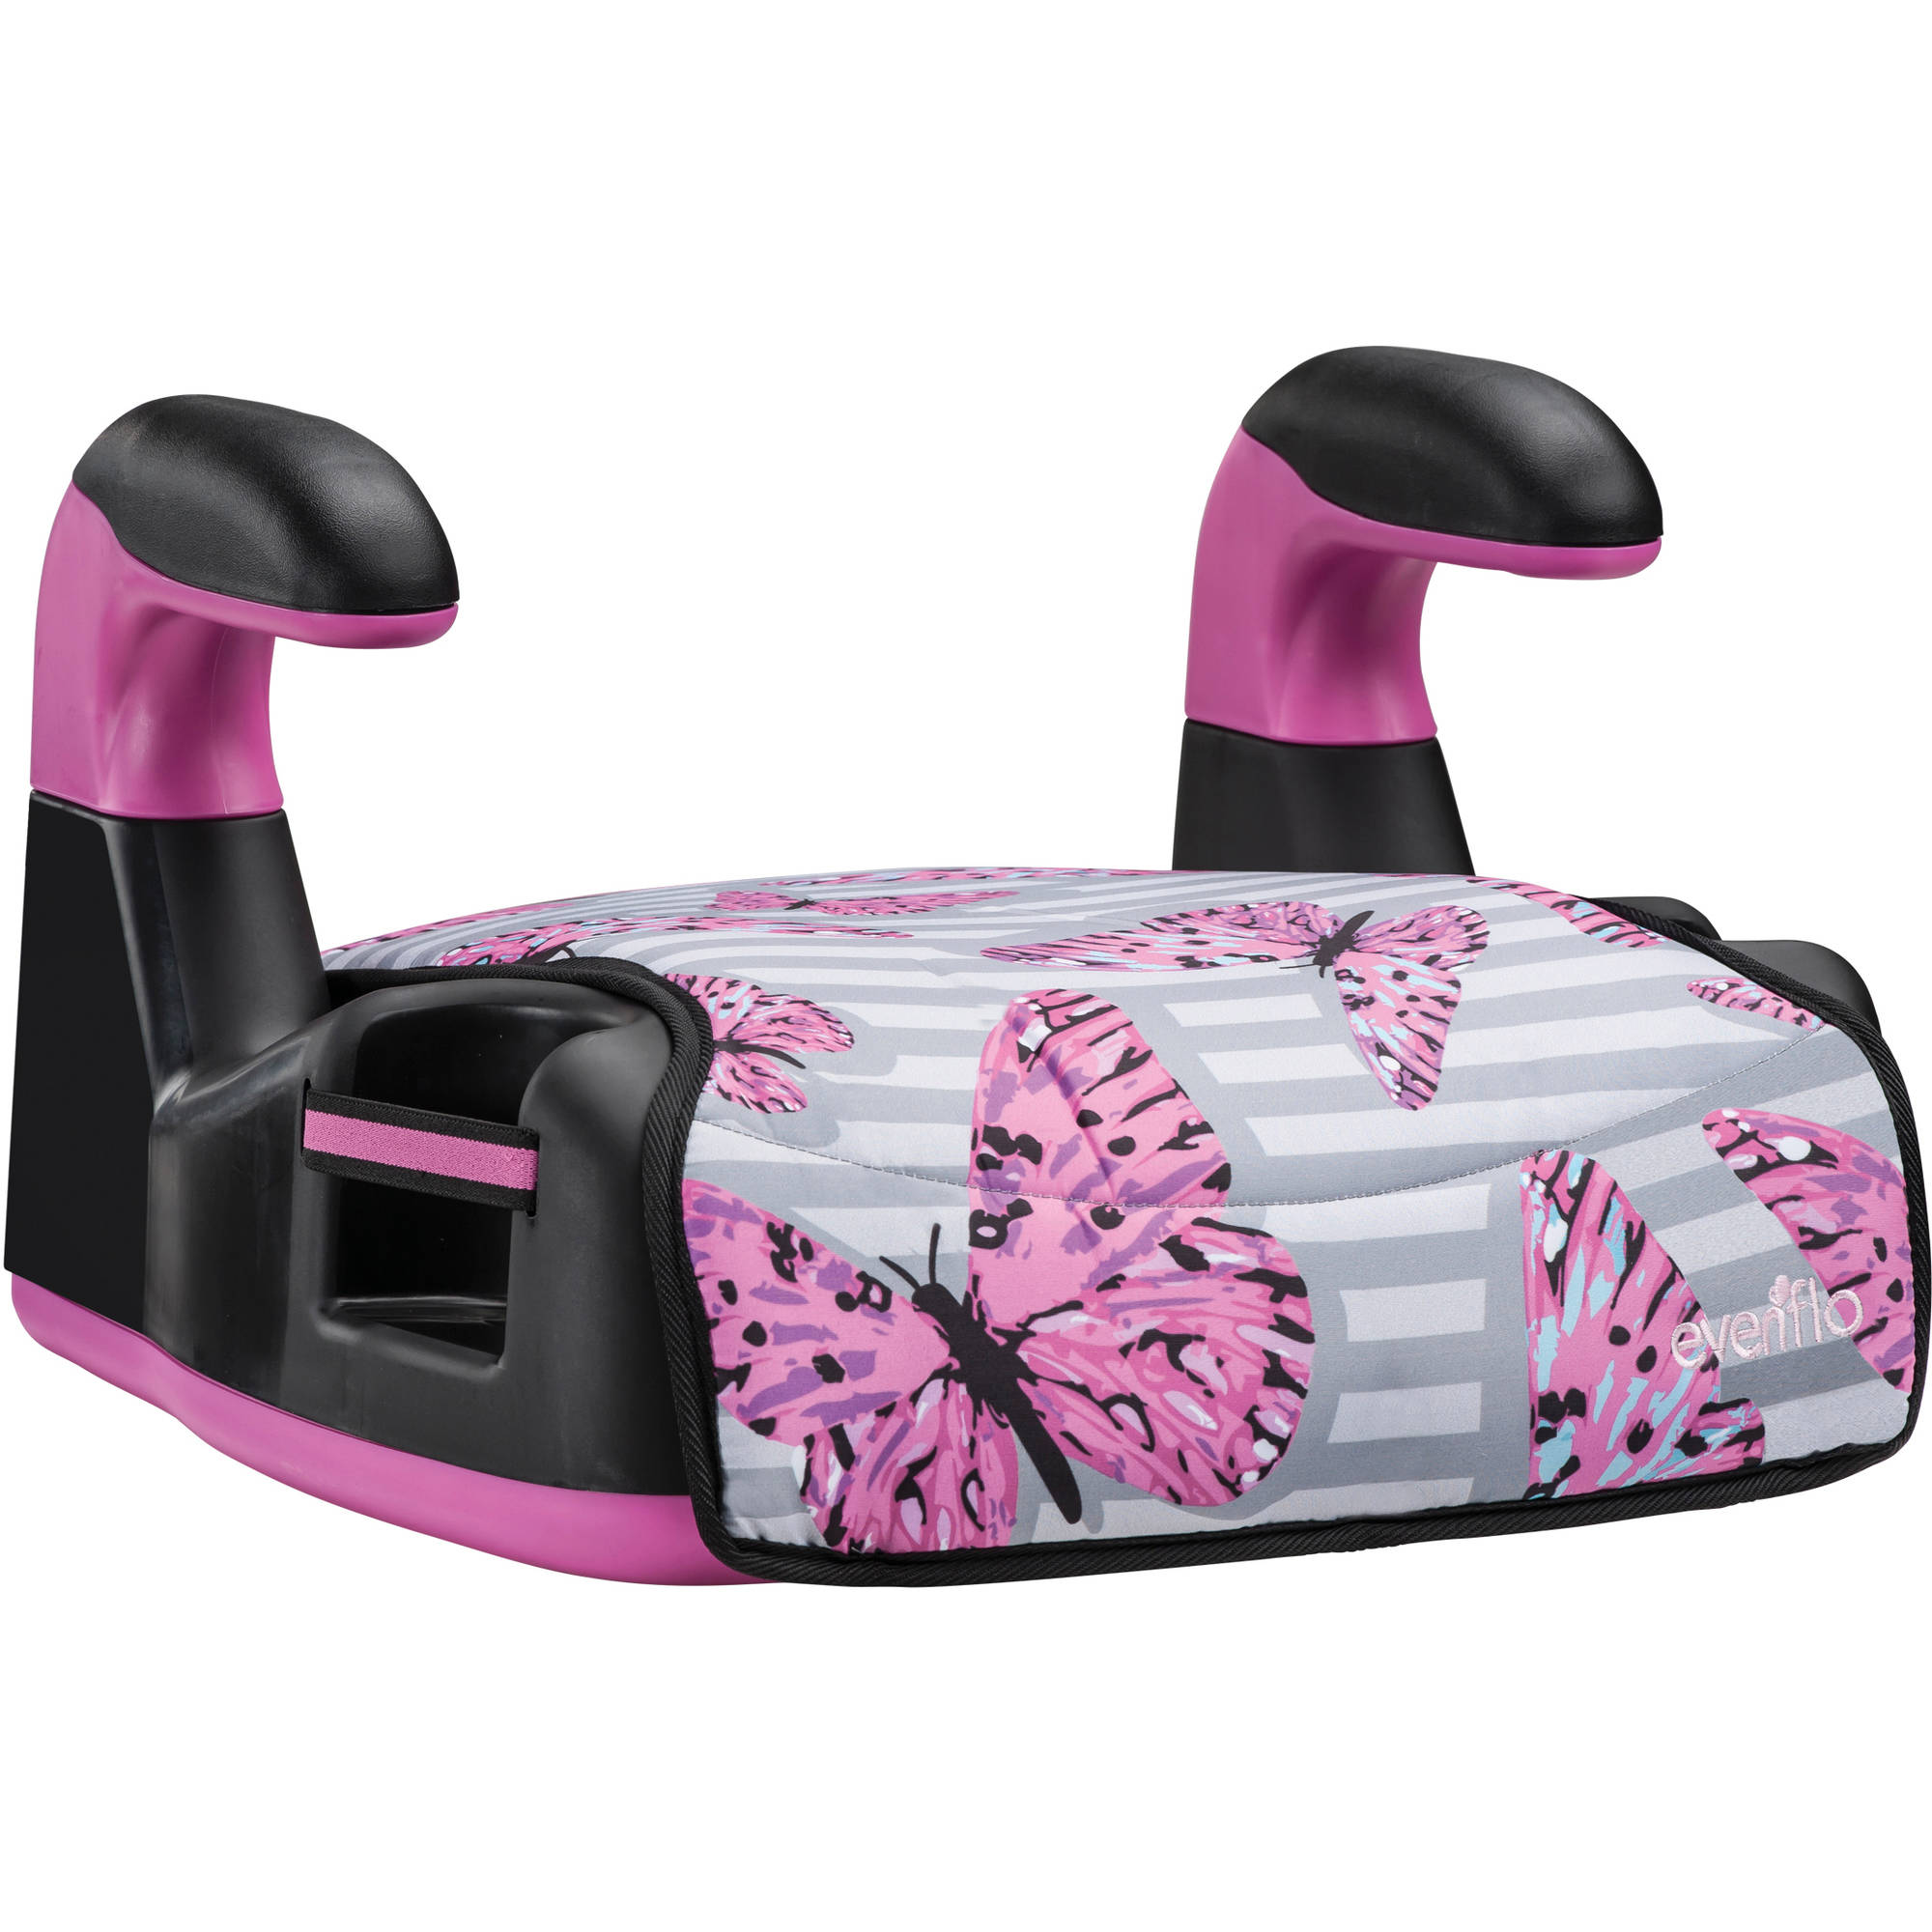 Evenflo AMP Select Backless Booster Car Seat, Butterfly